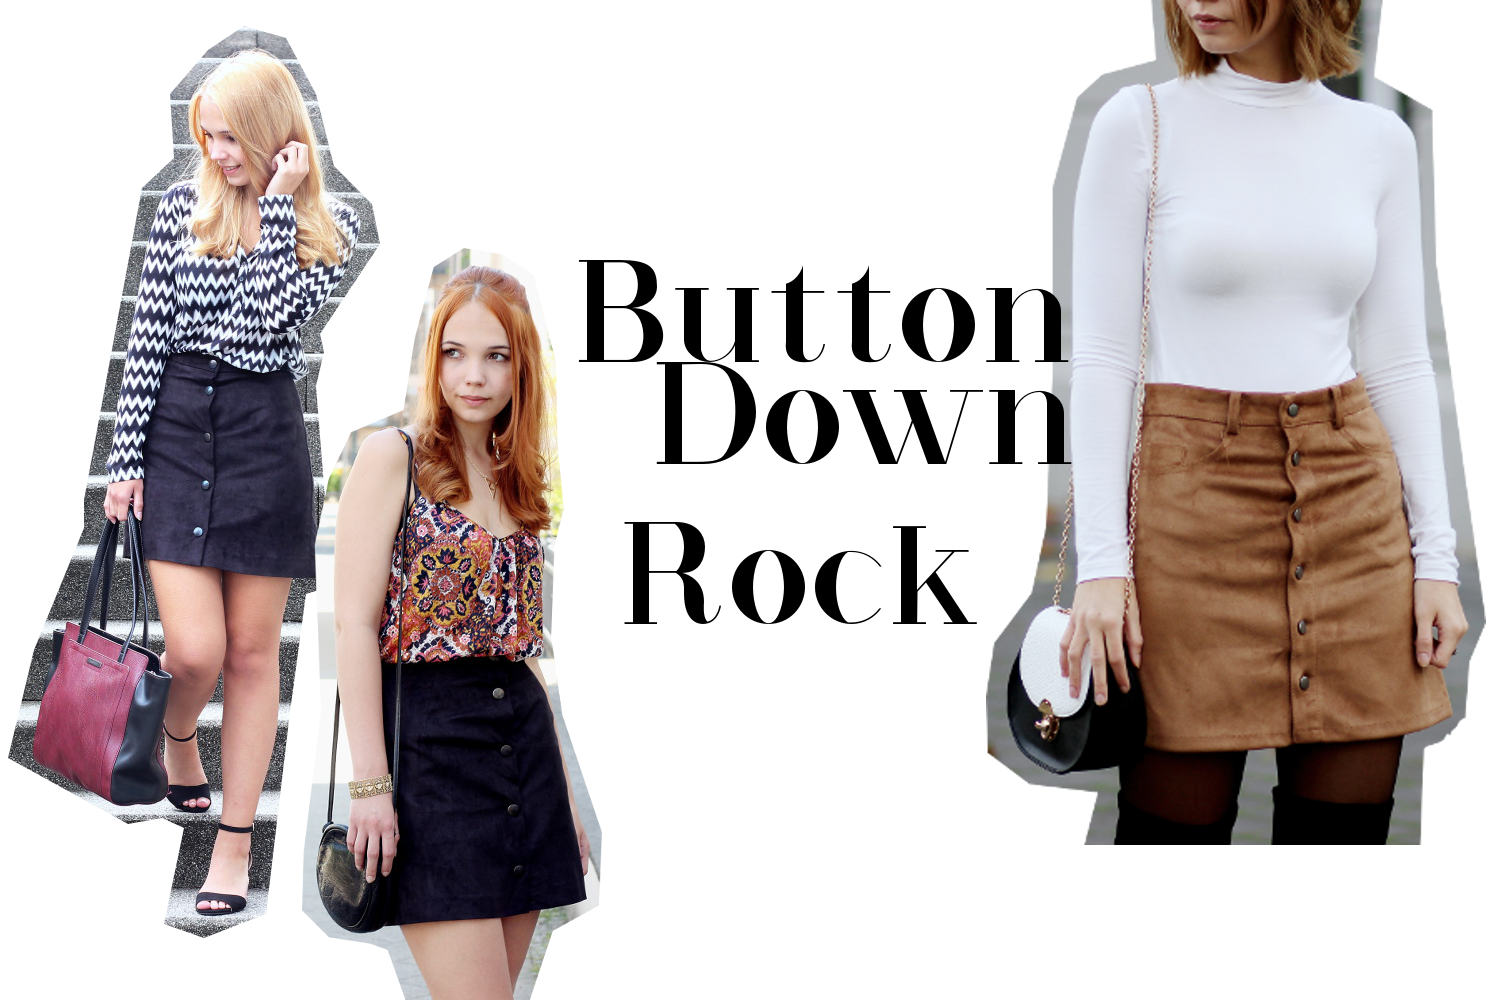 bezaubernde nana, bezauberndenana.de, fashionblog, modeblog, germany, deutschland, mode favoriten 2015, trends 2015, fashion, mode, button down rock